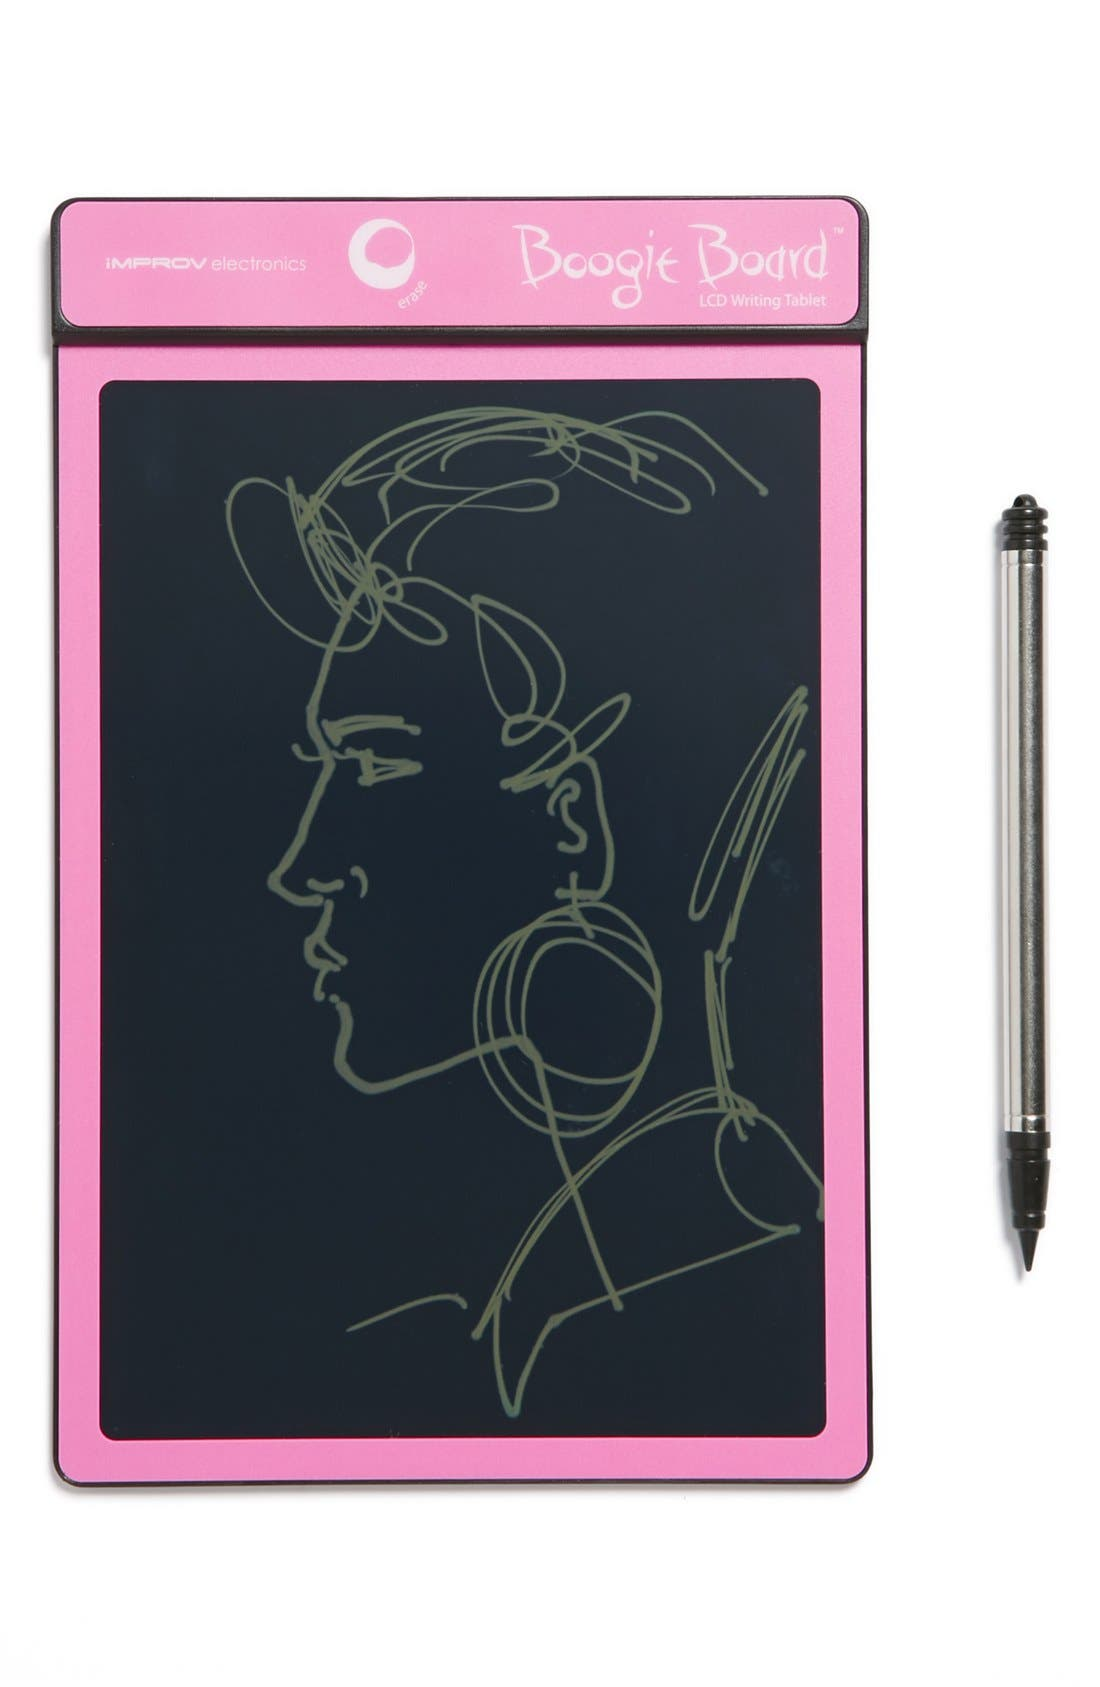 Main Image - Improv Electronics 'Boogie Board - The Original 8.5' LCD eWriter Tablet